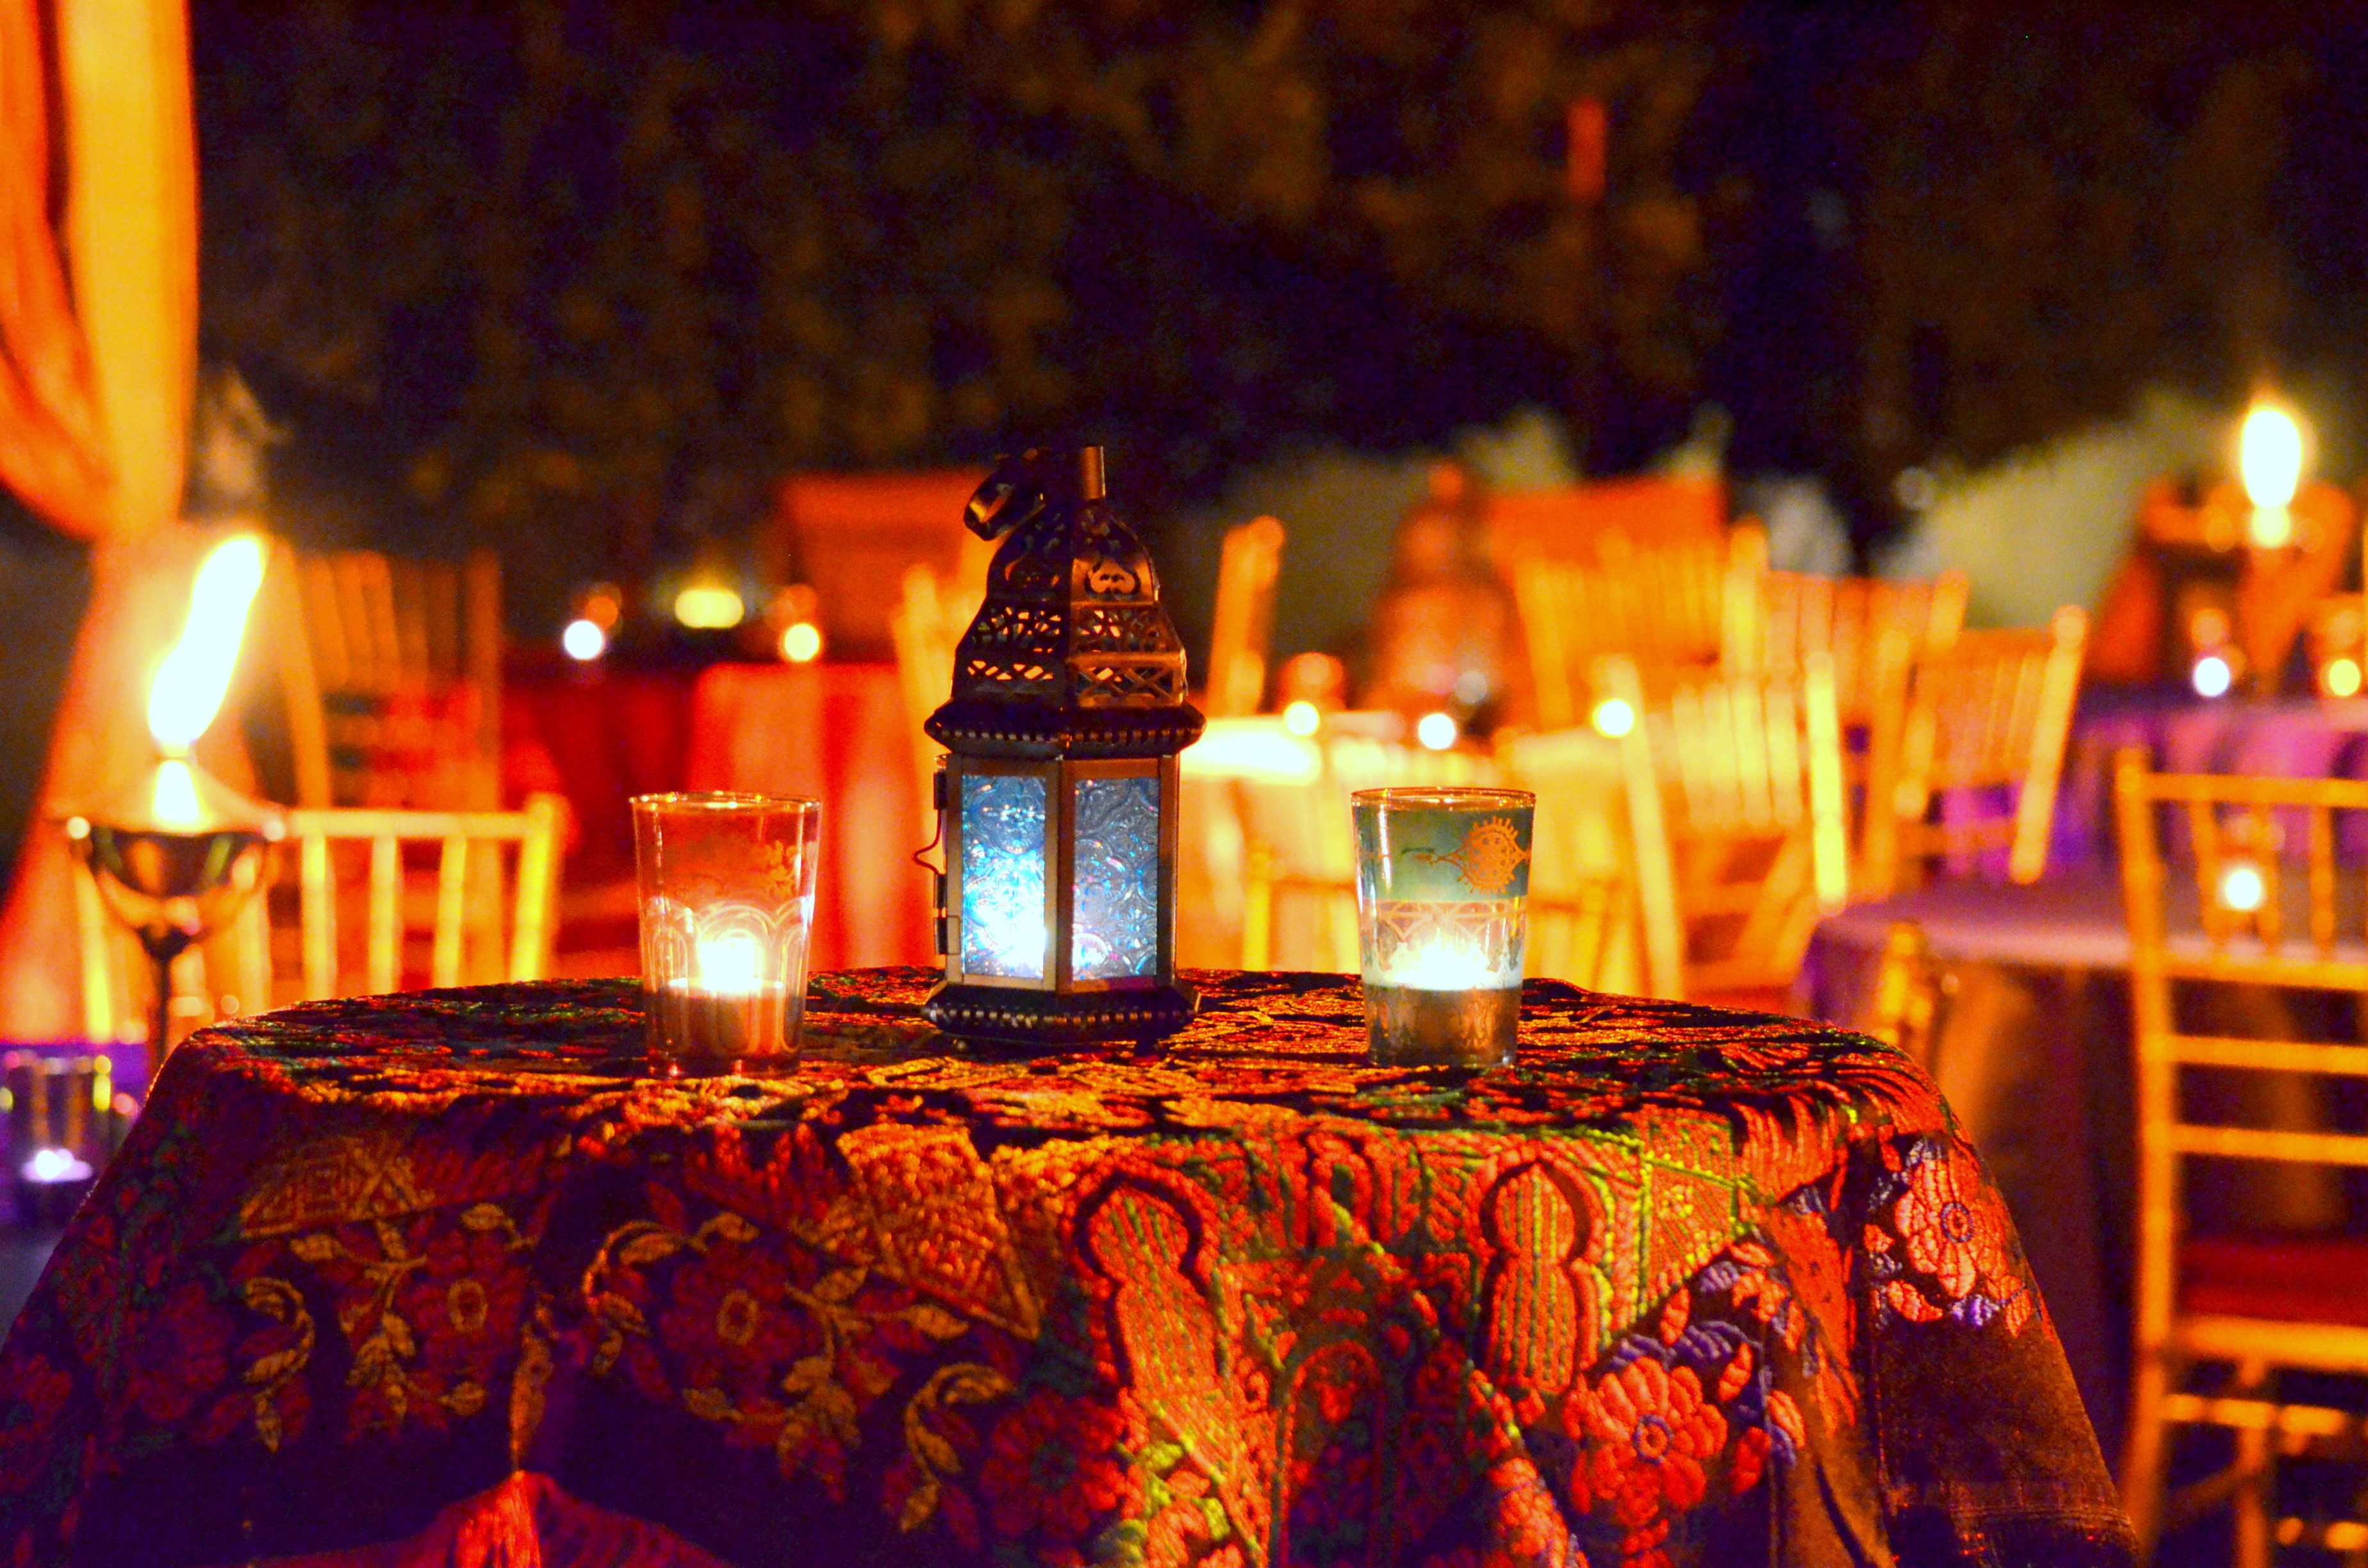 Fun party ideas and decorations to make your next backyard for Arabian night decoration ideas